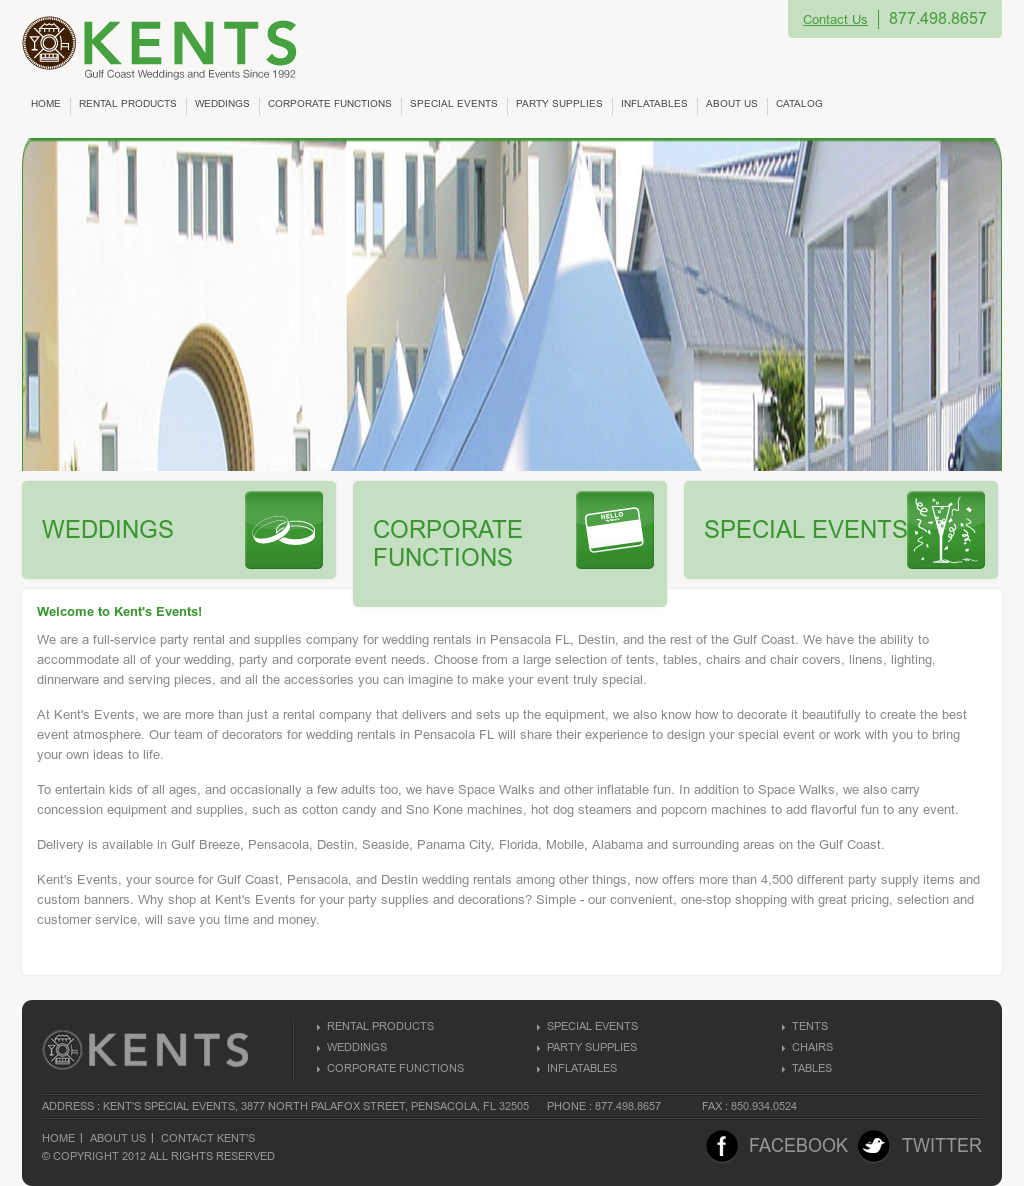 KENTS Competitors, Revenue and Employees - Owler Company Profile